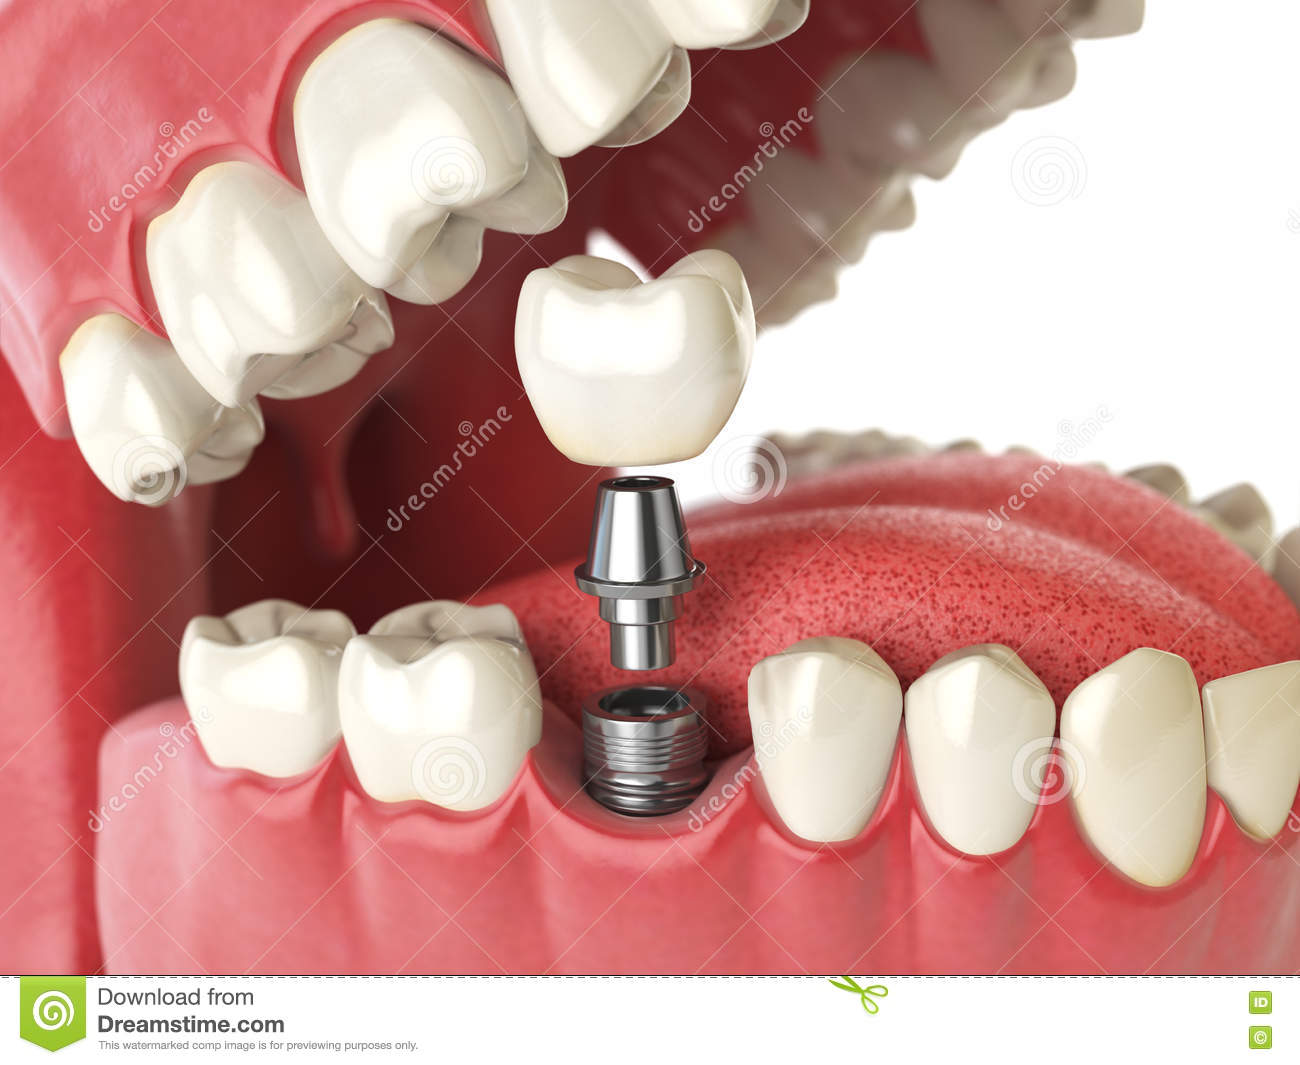 Tooth Human Implant Dental Concept Human Teeth Or Dentures Stock